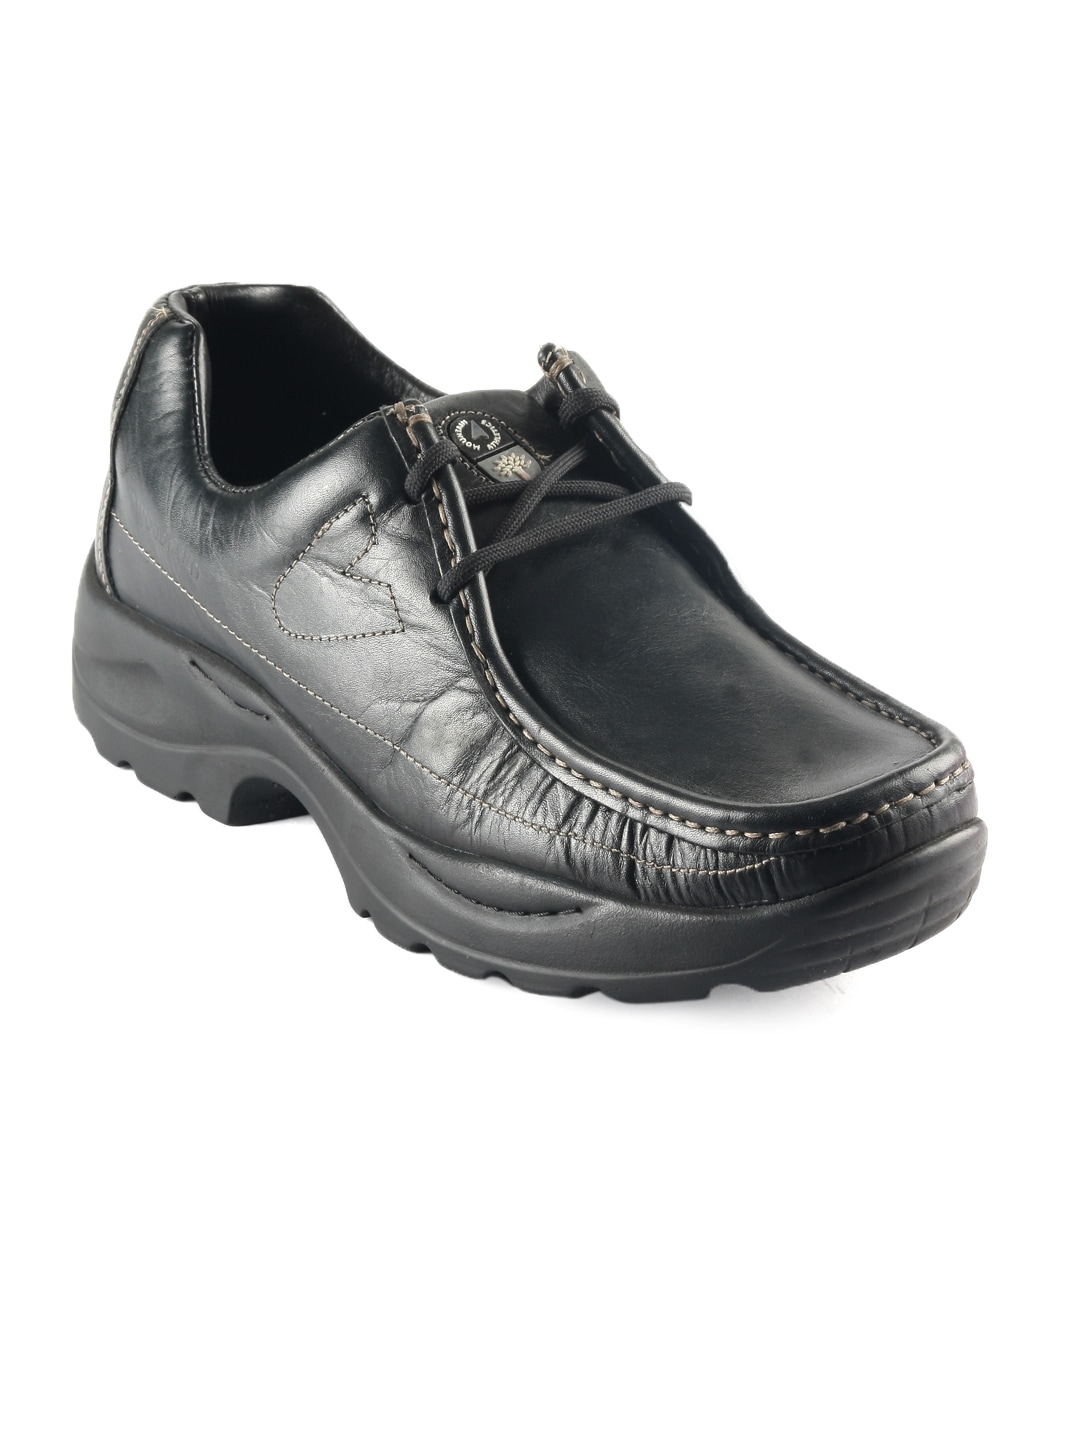 buy woodland black casual shoes 288 footwear for